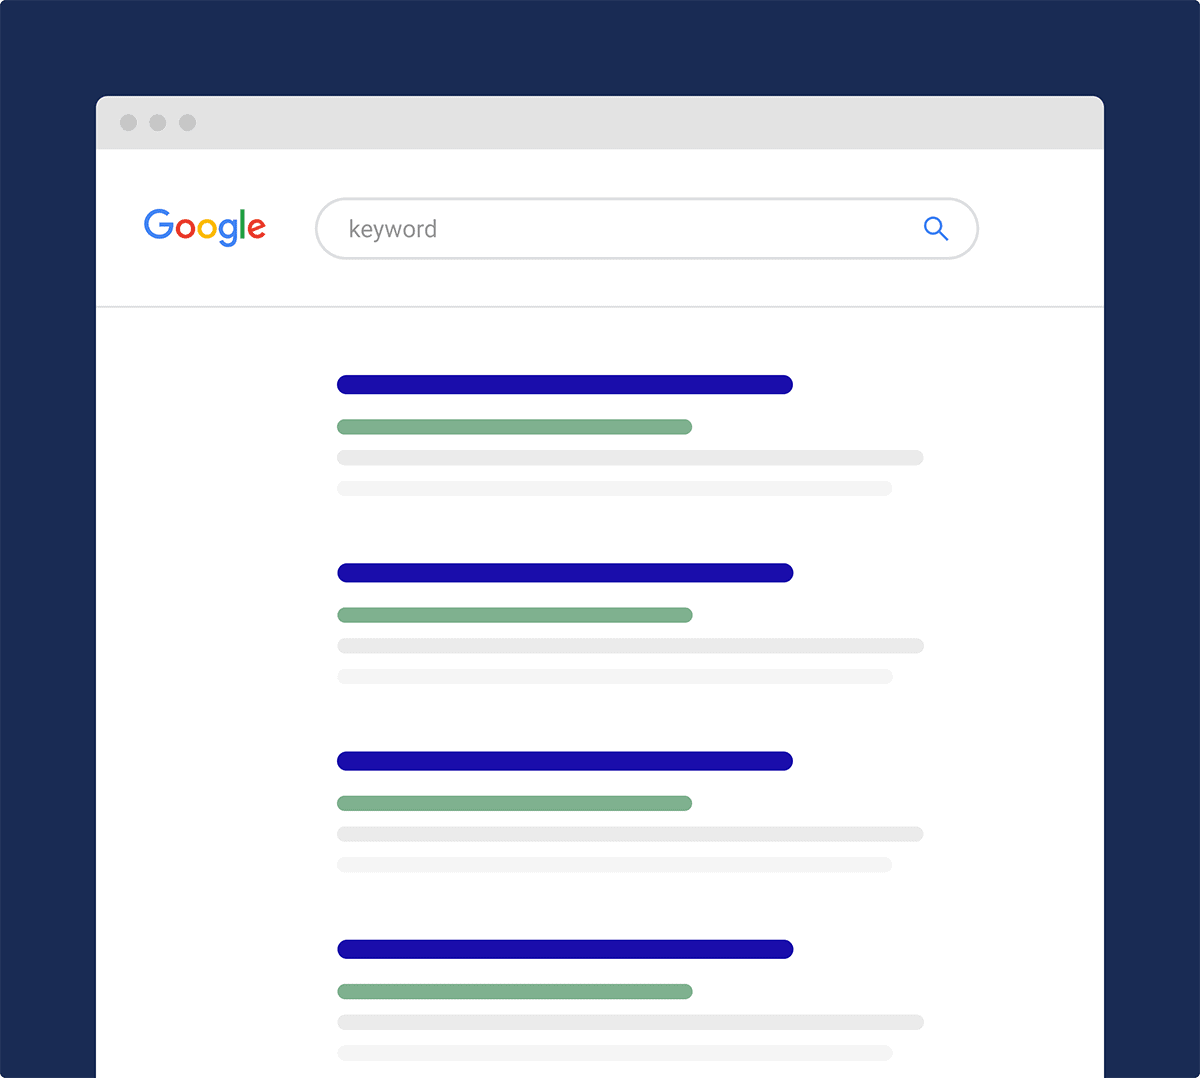 The top 5 results acquire more clicks